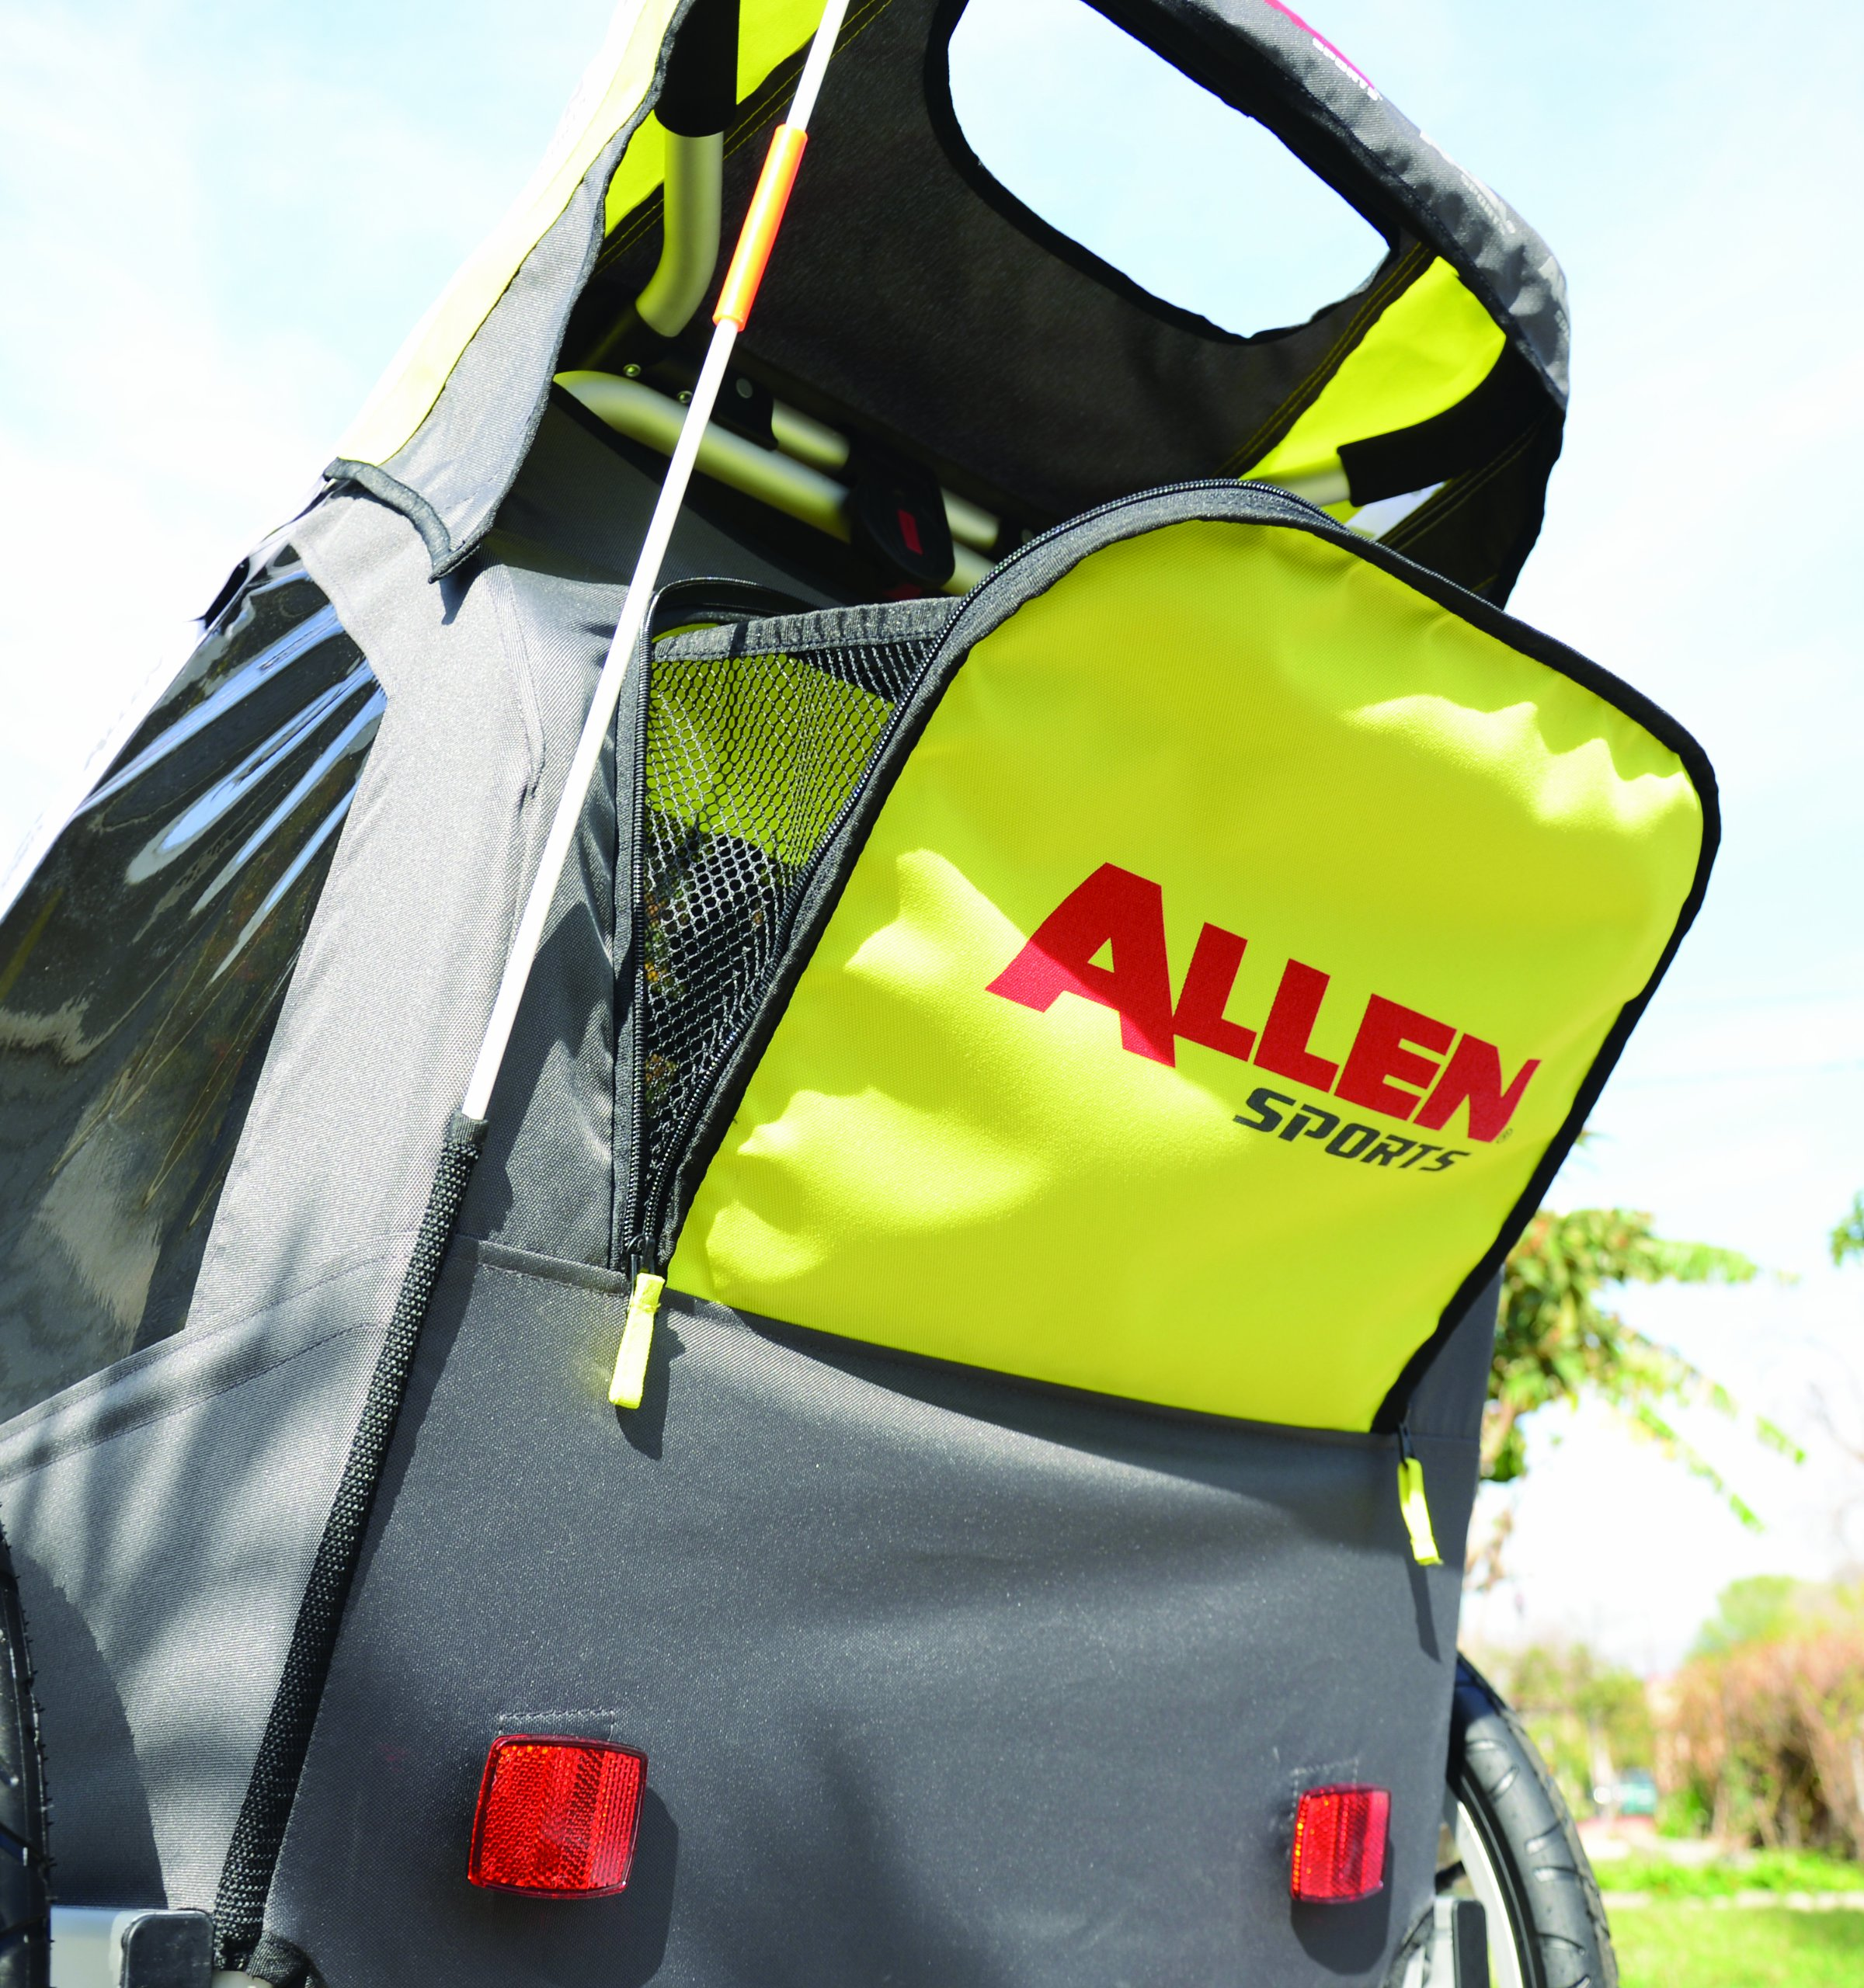 Allen Sports Premier 2-Child Aluminum Bike Trailer/Racing Stroller, Green/Grey by Allen Sports (Image #7)